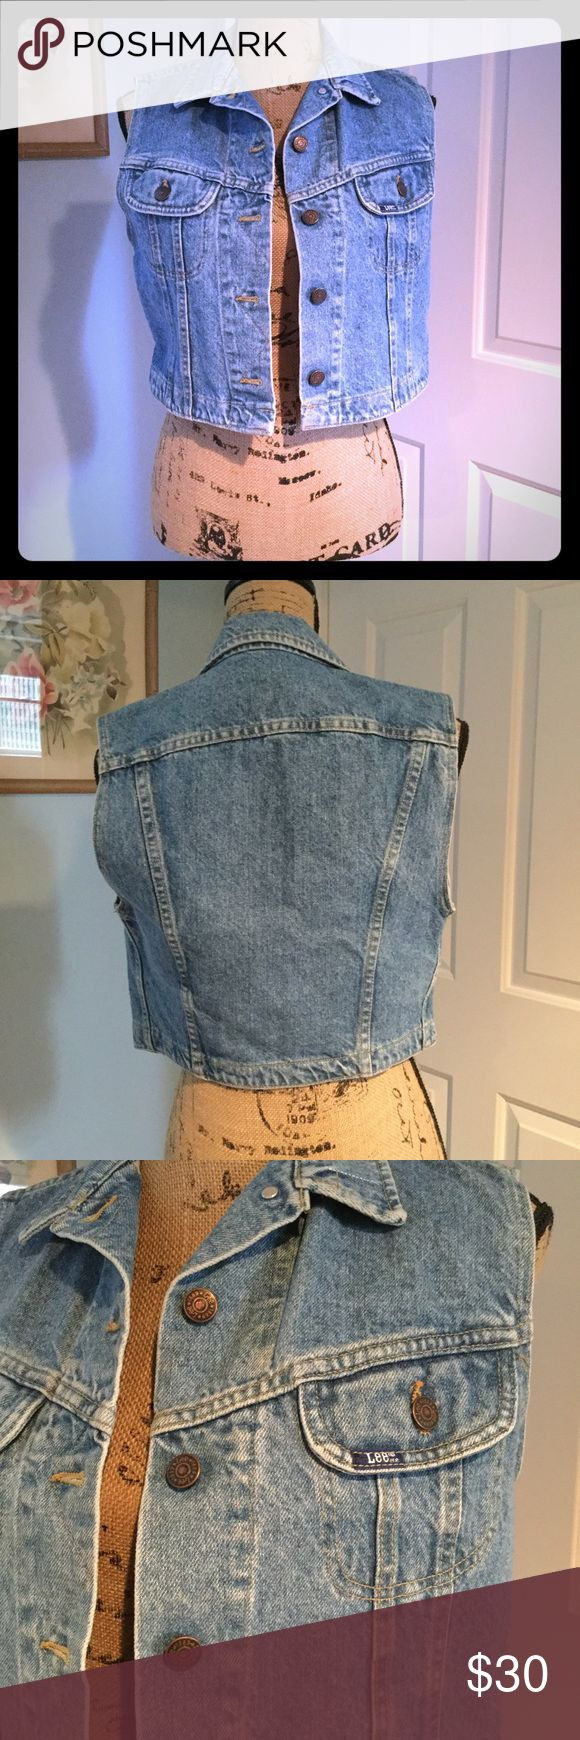 Lee cropped sleeveless denim jacket Fabulous Lee jean crop vest. No size tag, would work best for size small. Adorable vintage vibe, a must have! Lee Jackets & Coats